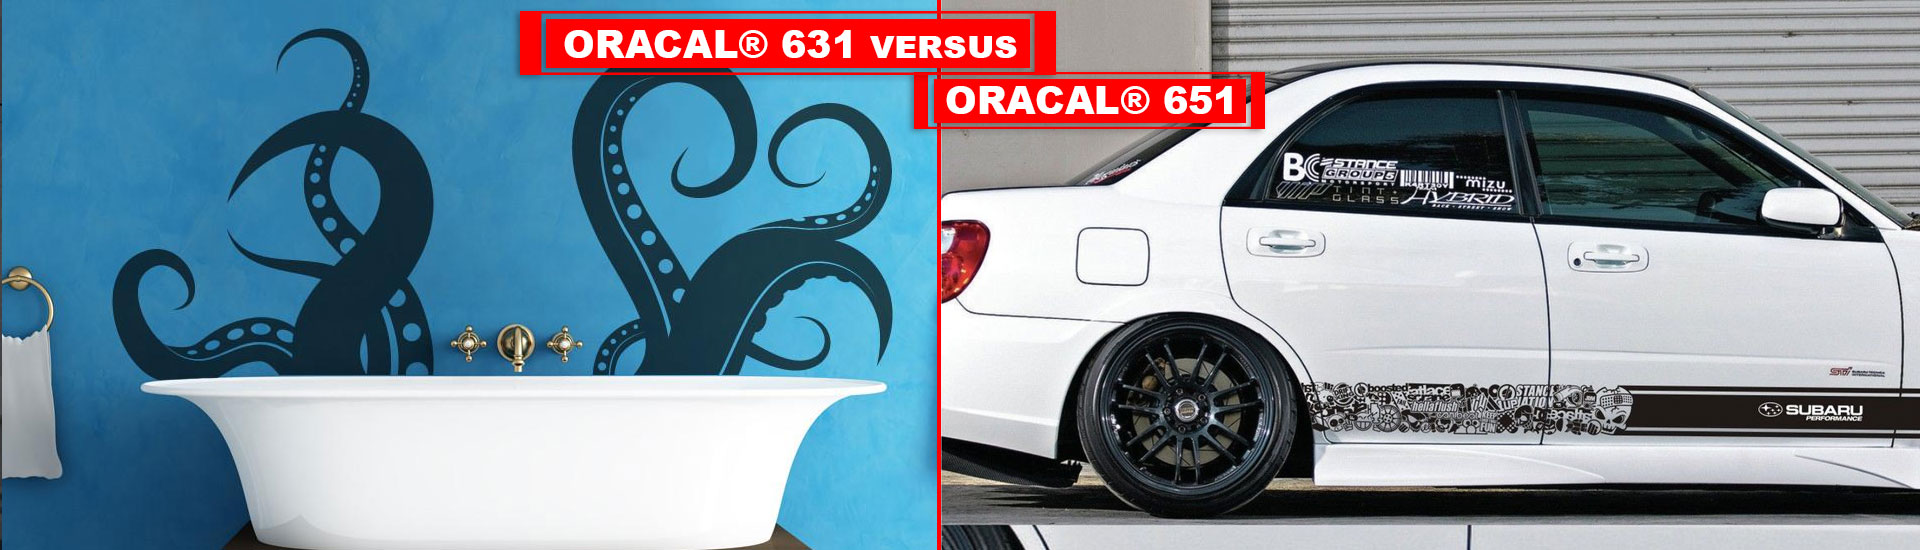 What is the difference Between 631 and 651?